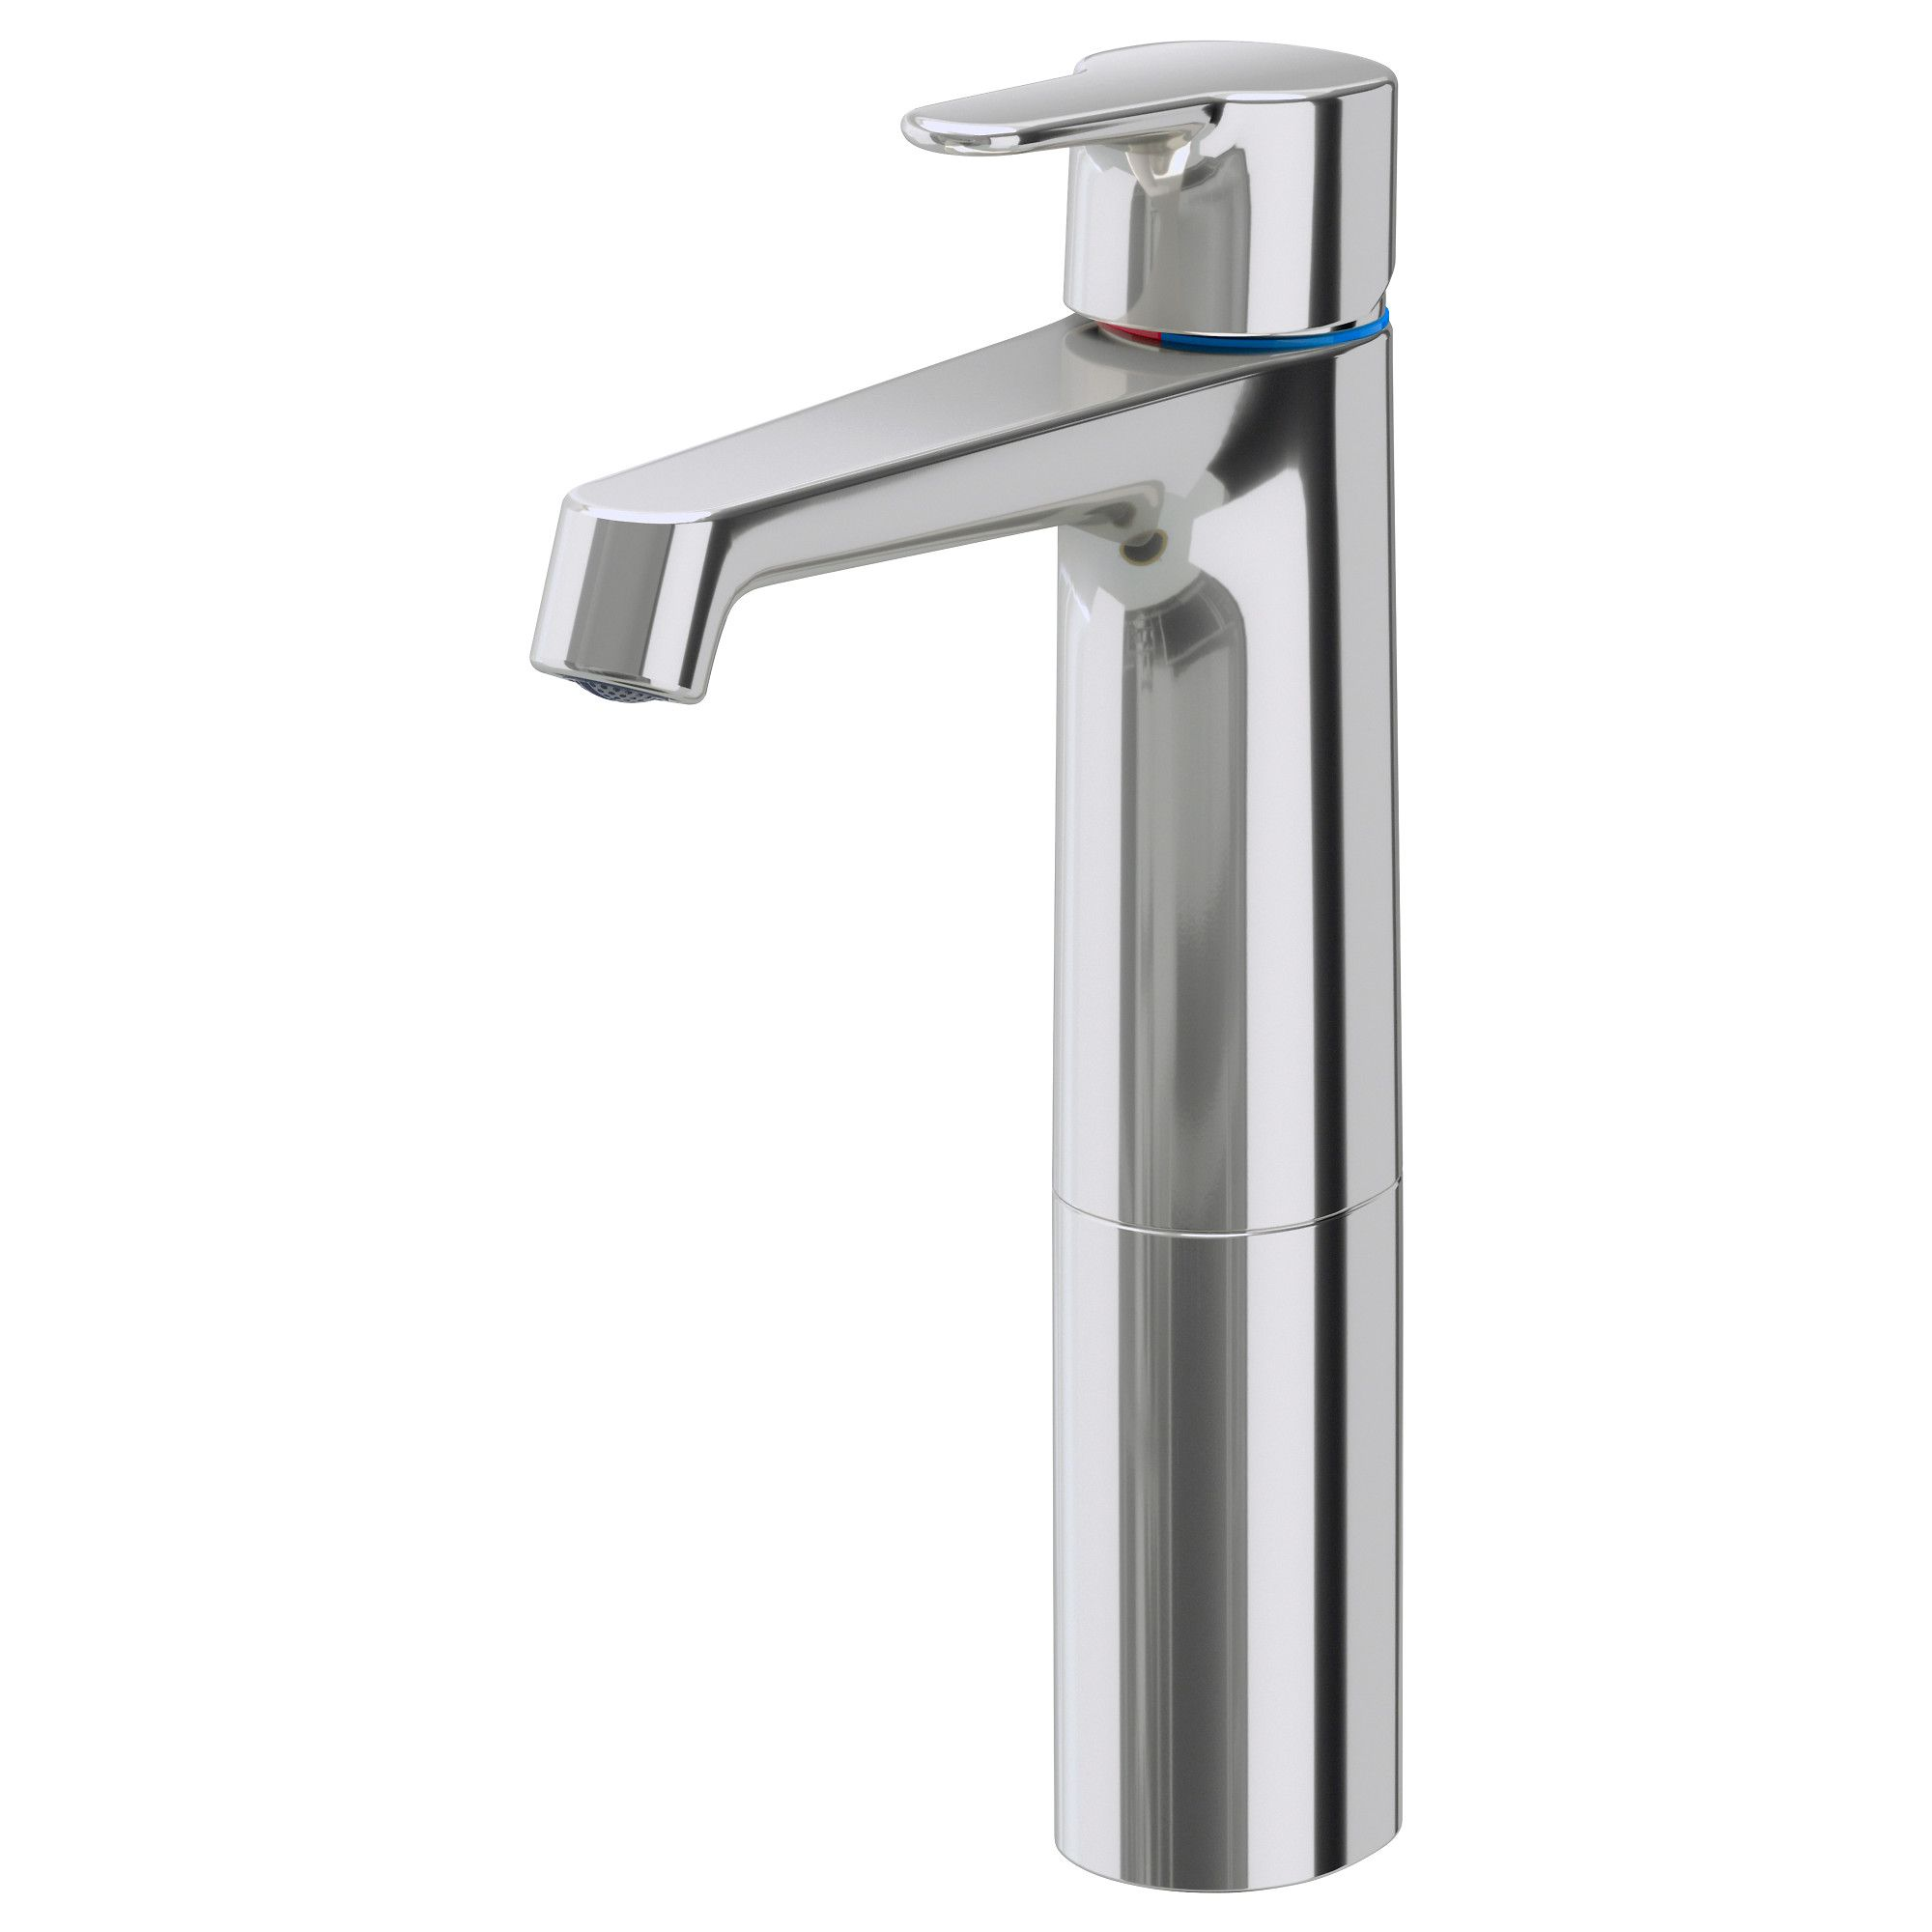 IKEA - BROGRUND Faucet, tall chrome plated | Products